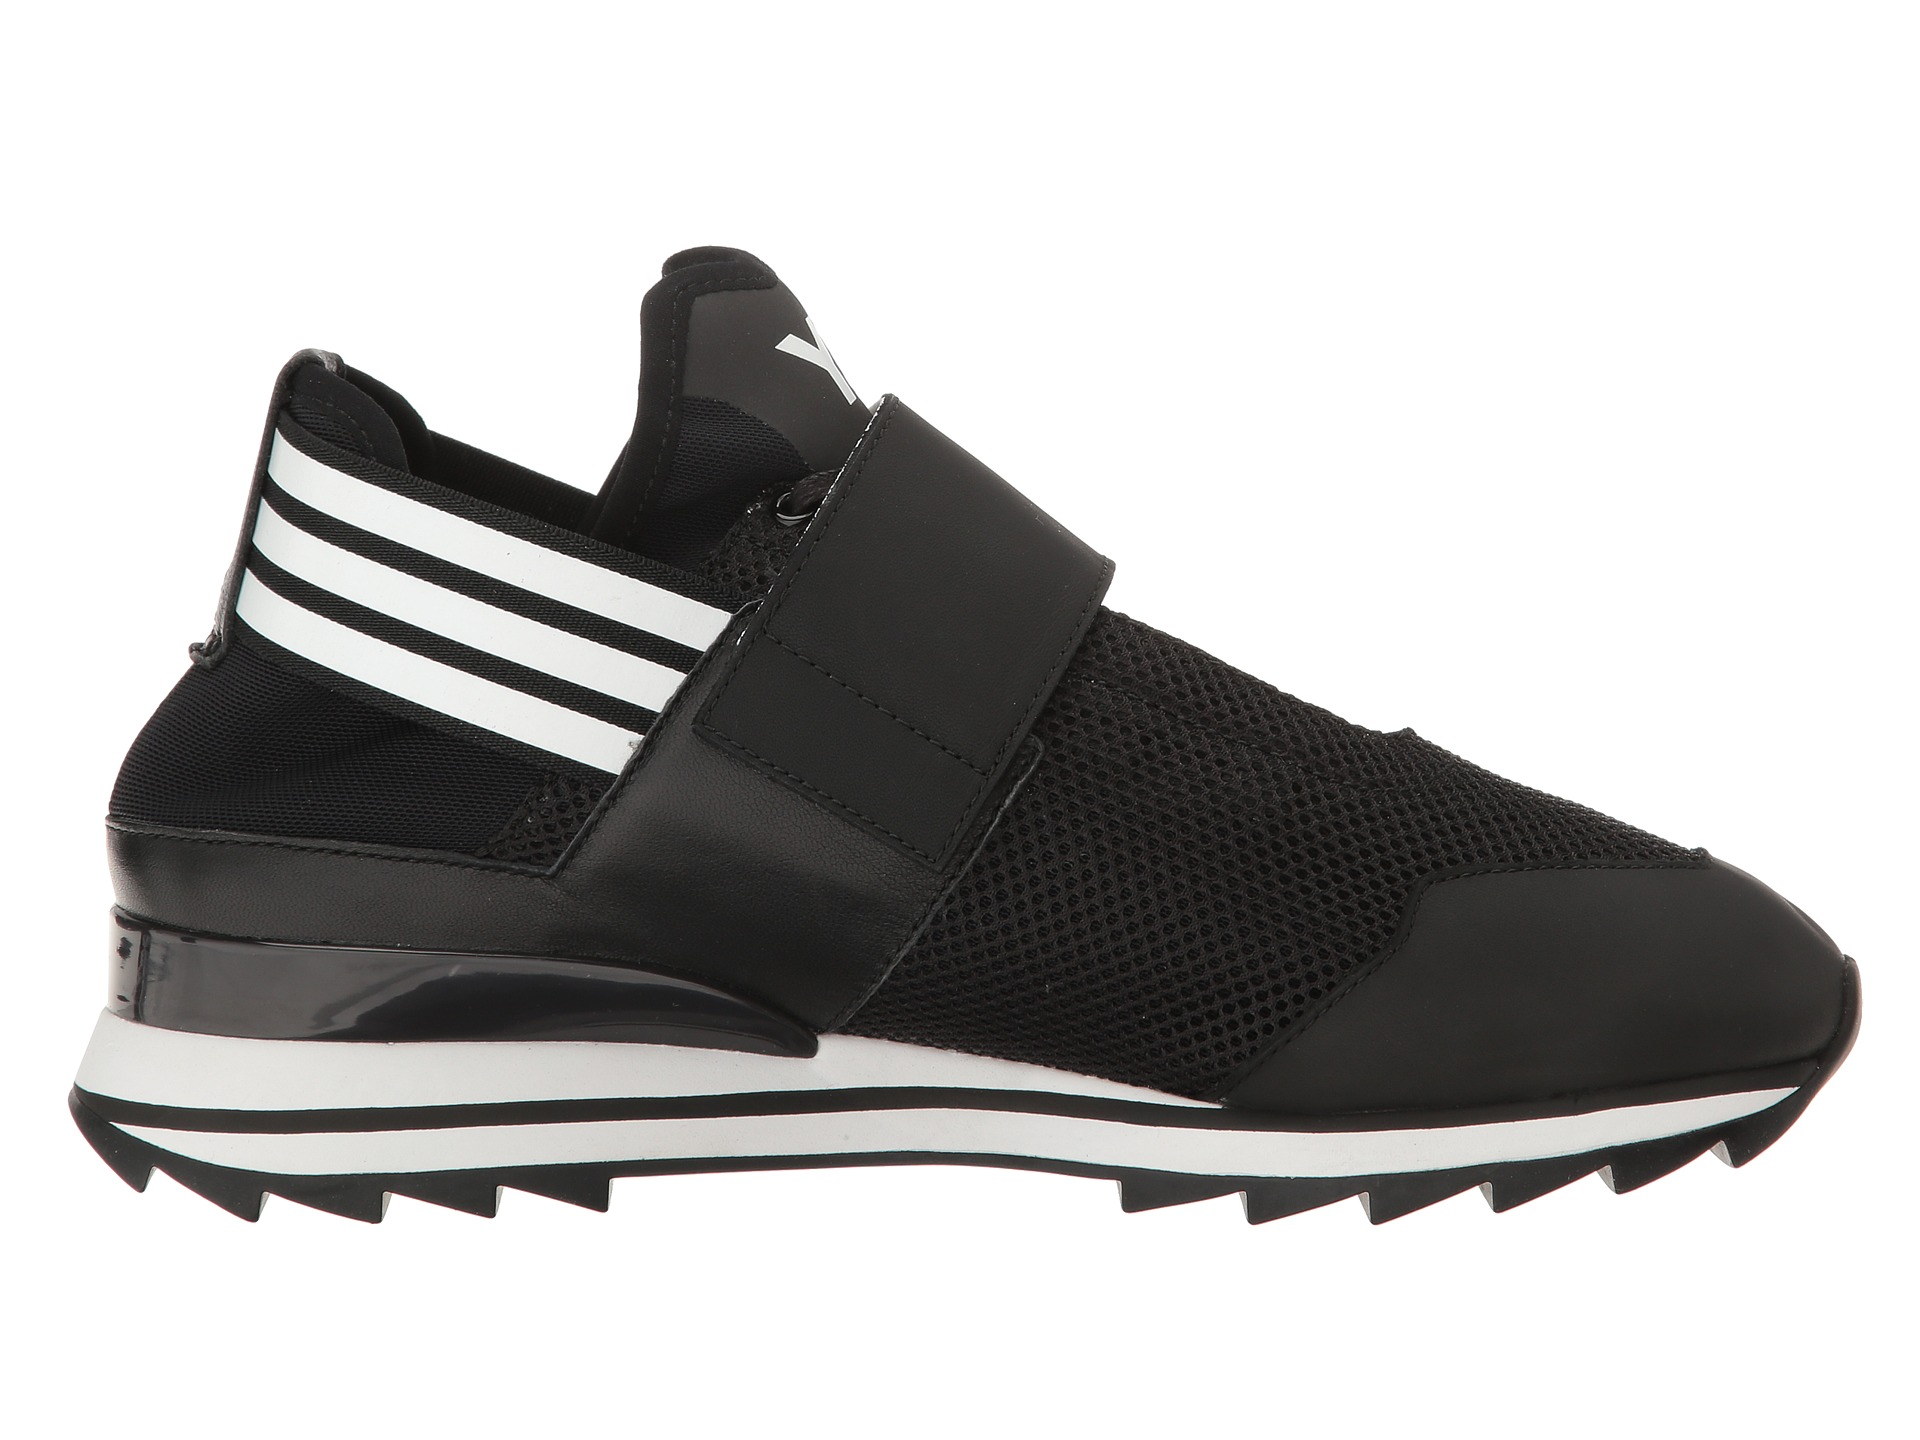 Adidas By Raf Simons Shoes Sneakers, Sandals Adidas Y-3 Official